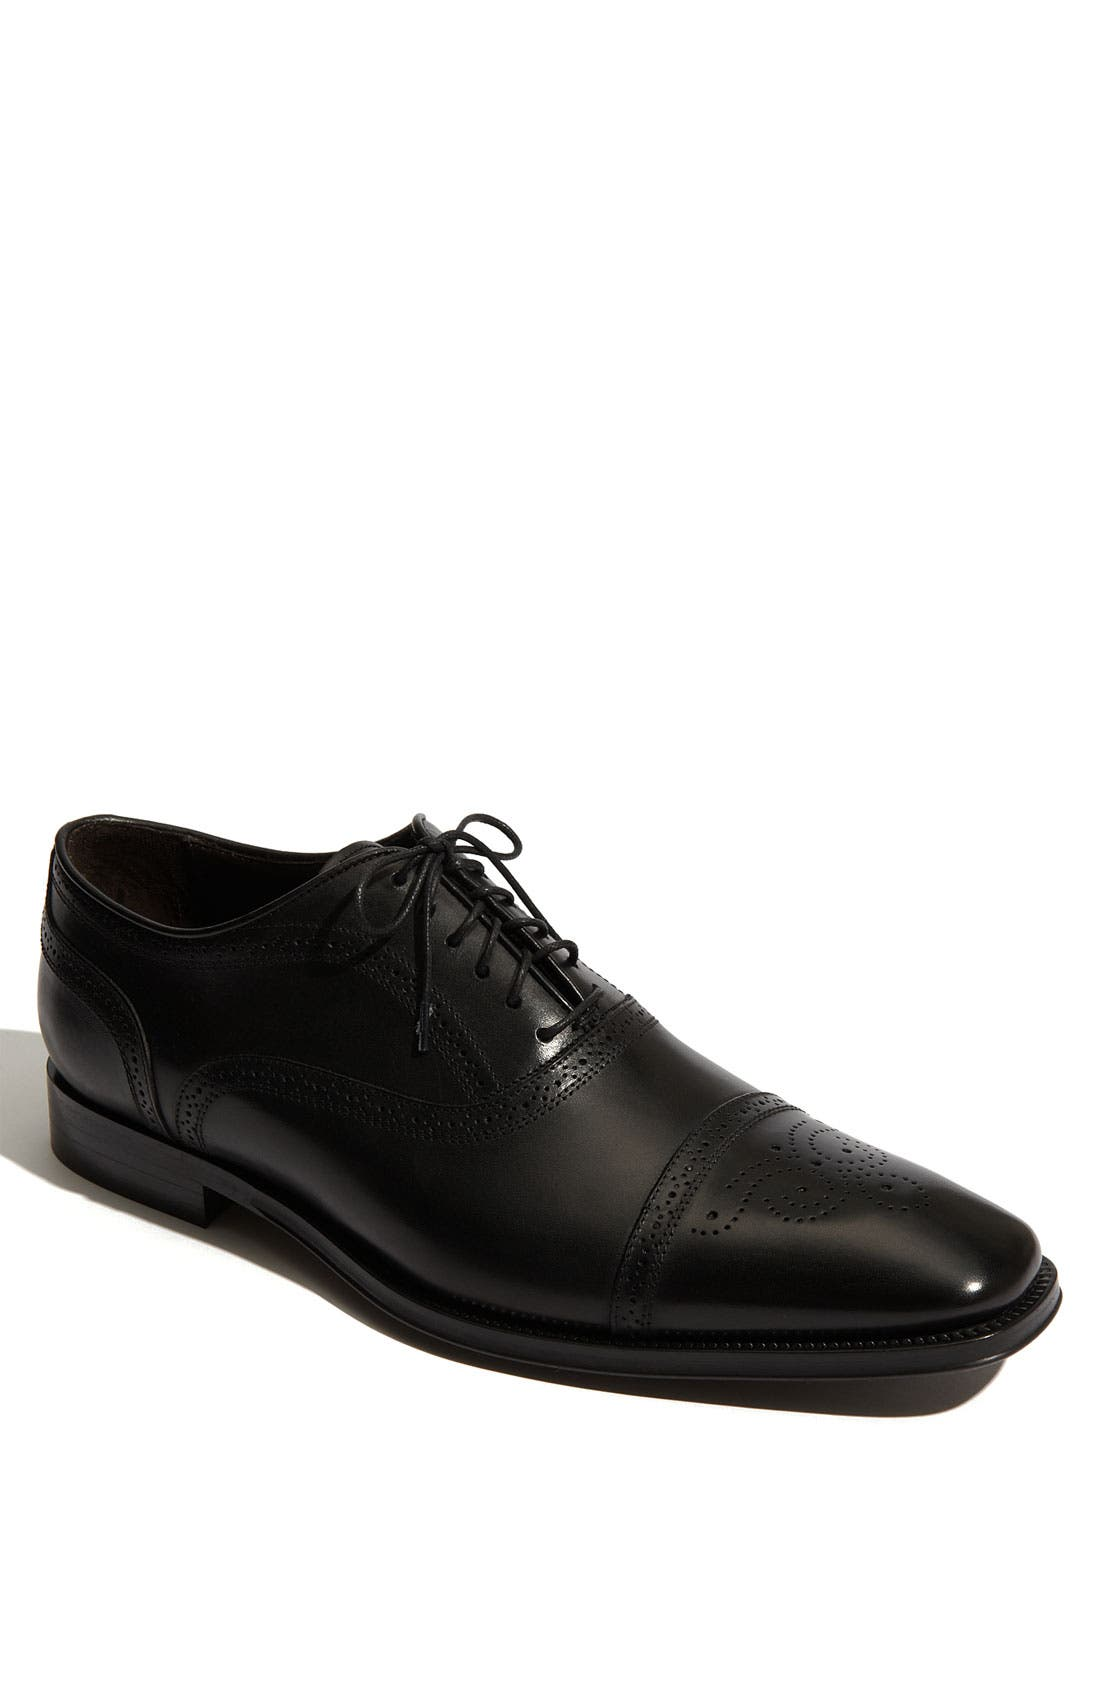 Alternate Image 1 Selected - To Boot New York 'Aaron' Oxford (Men)